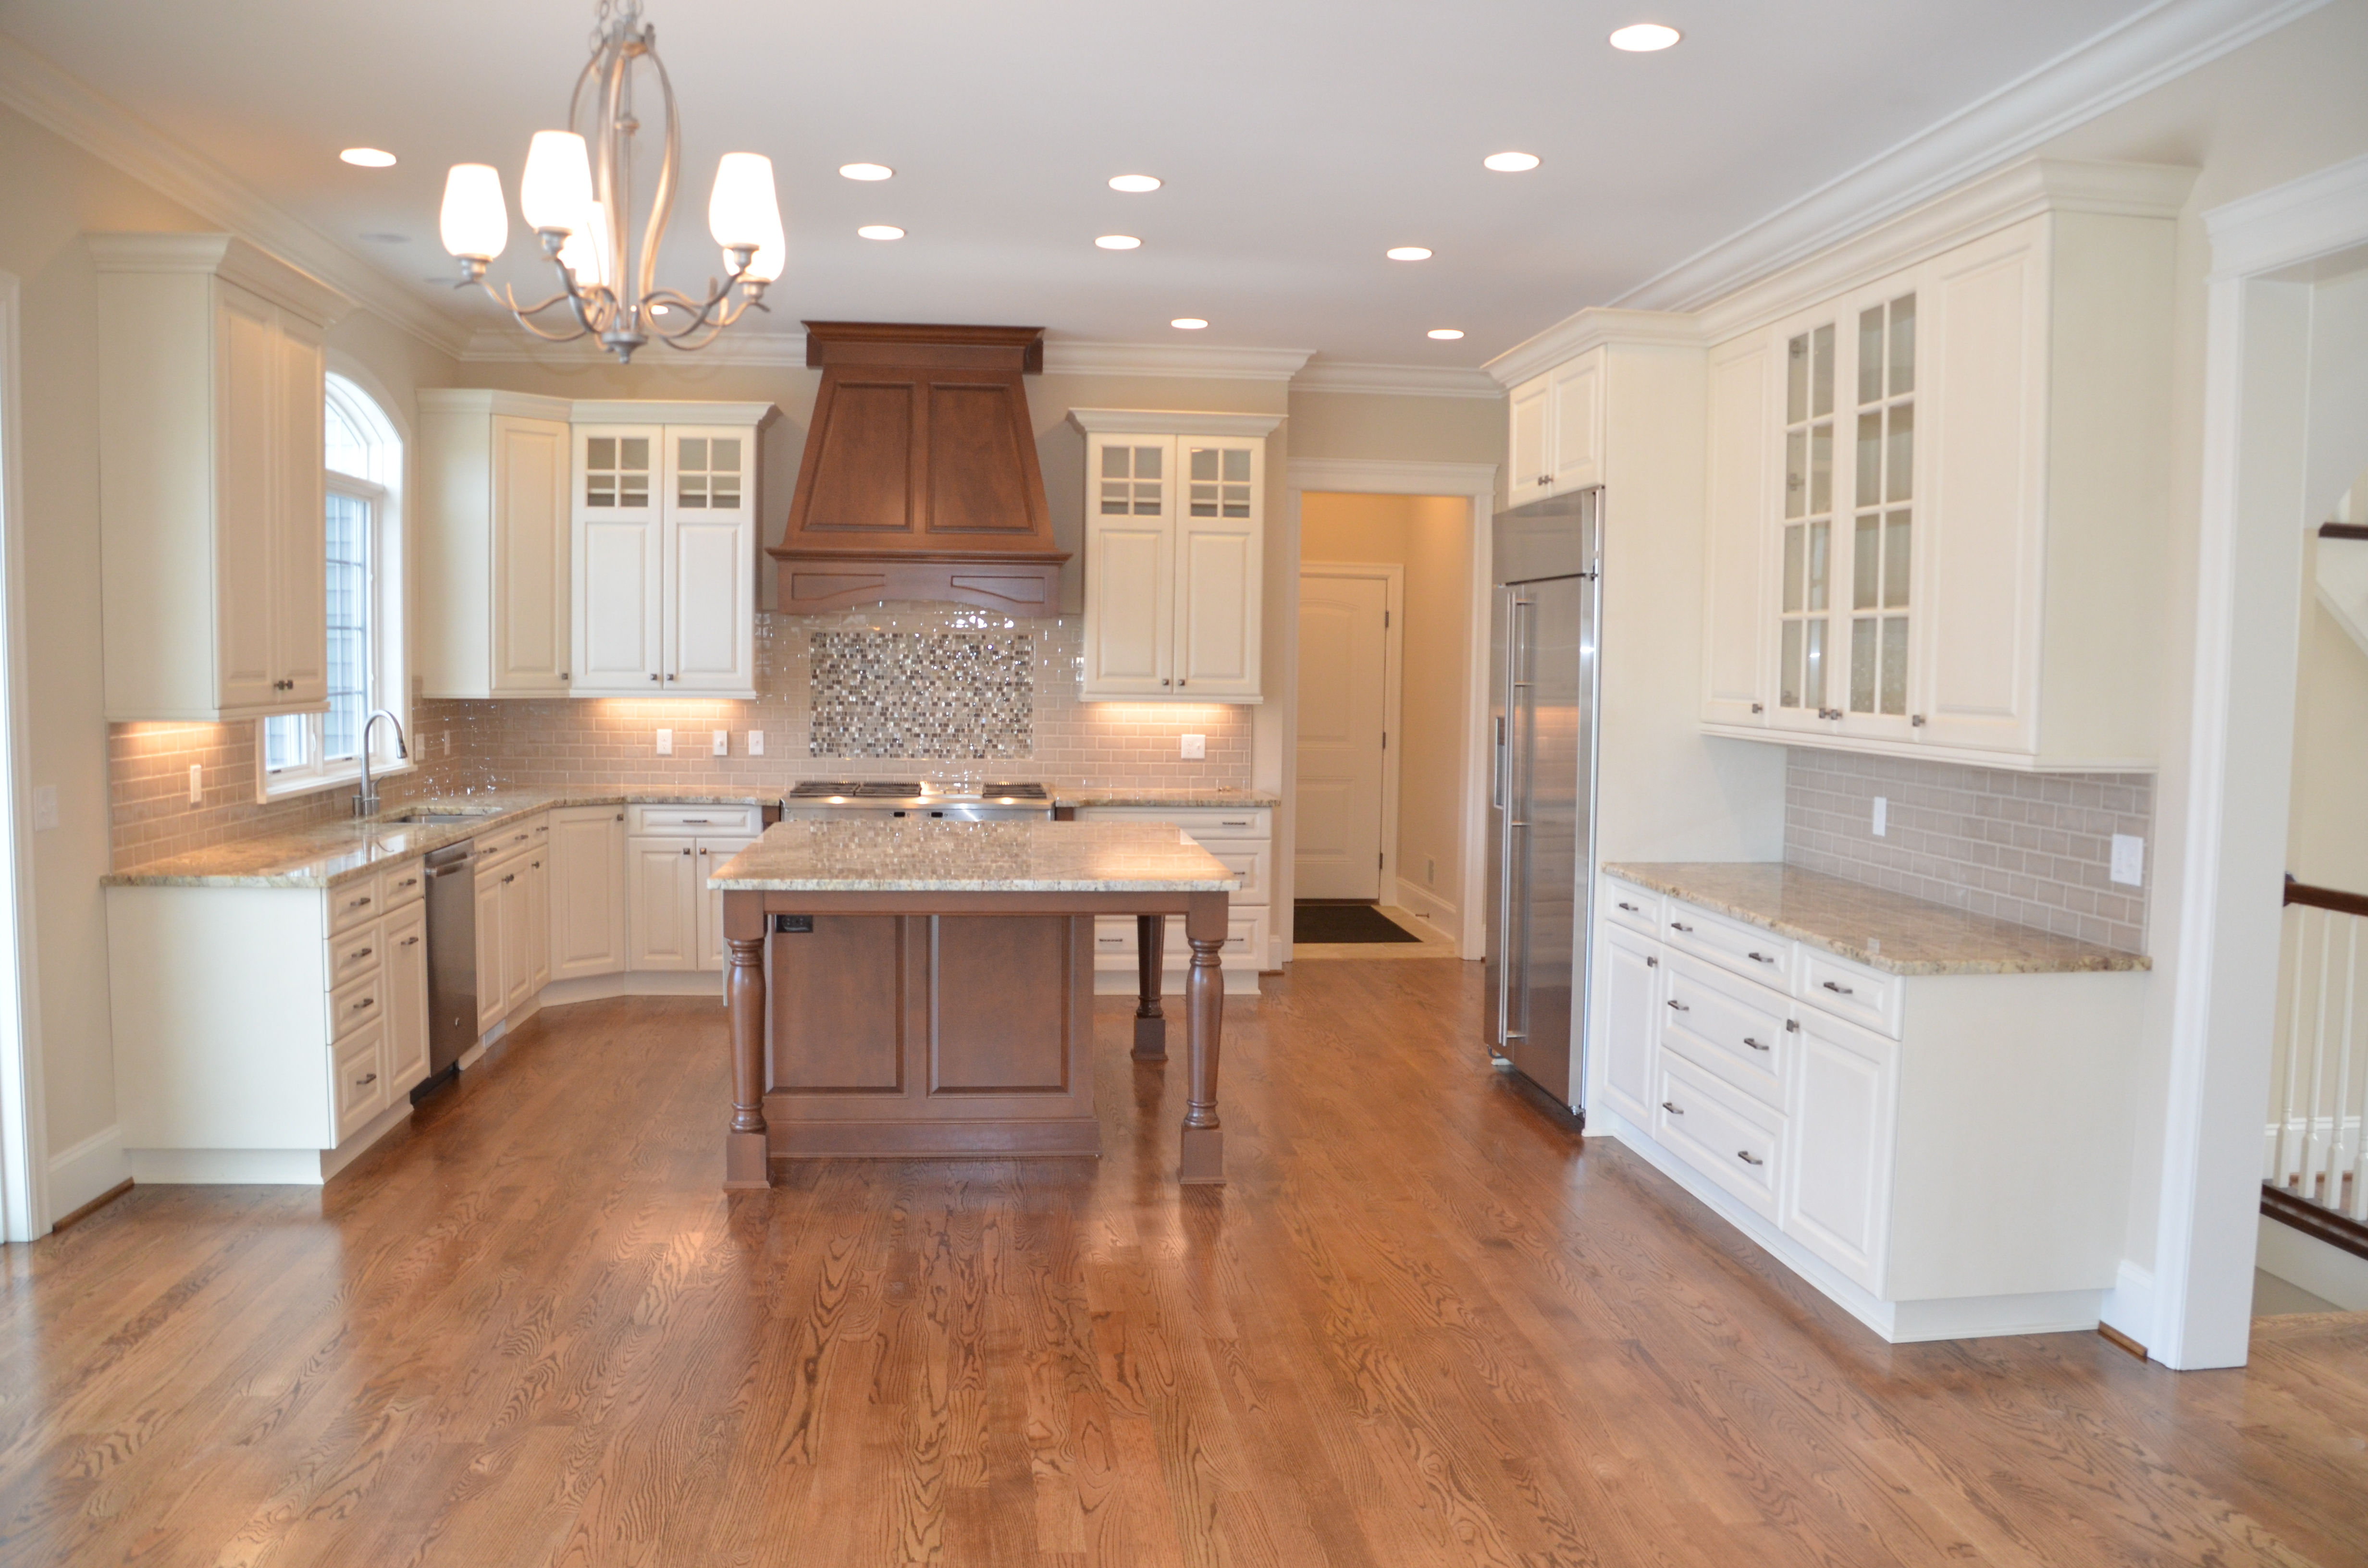 New Home Builder Pittsford NY